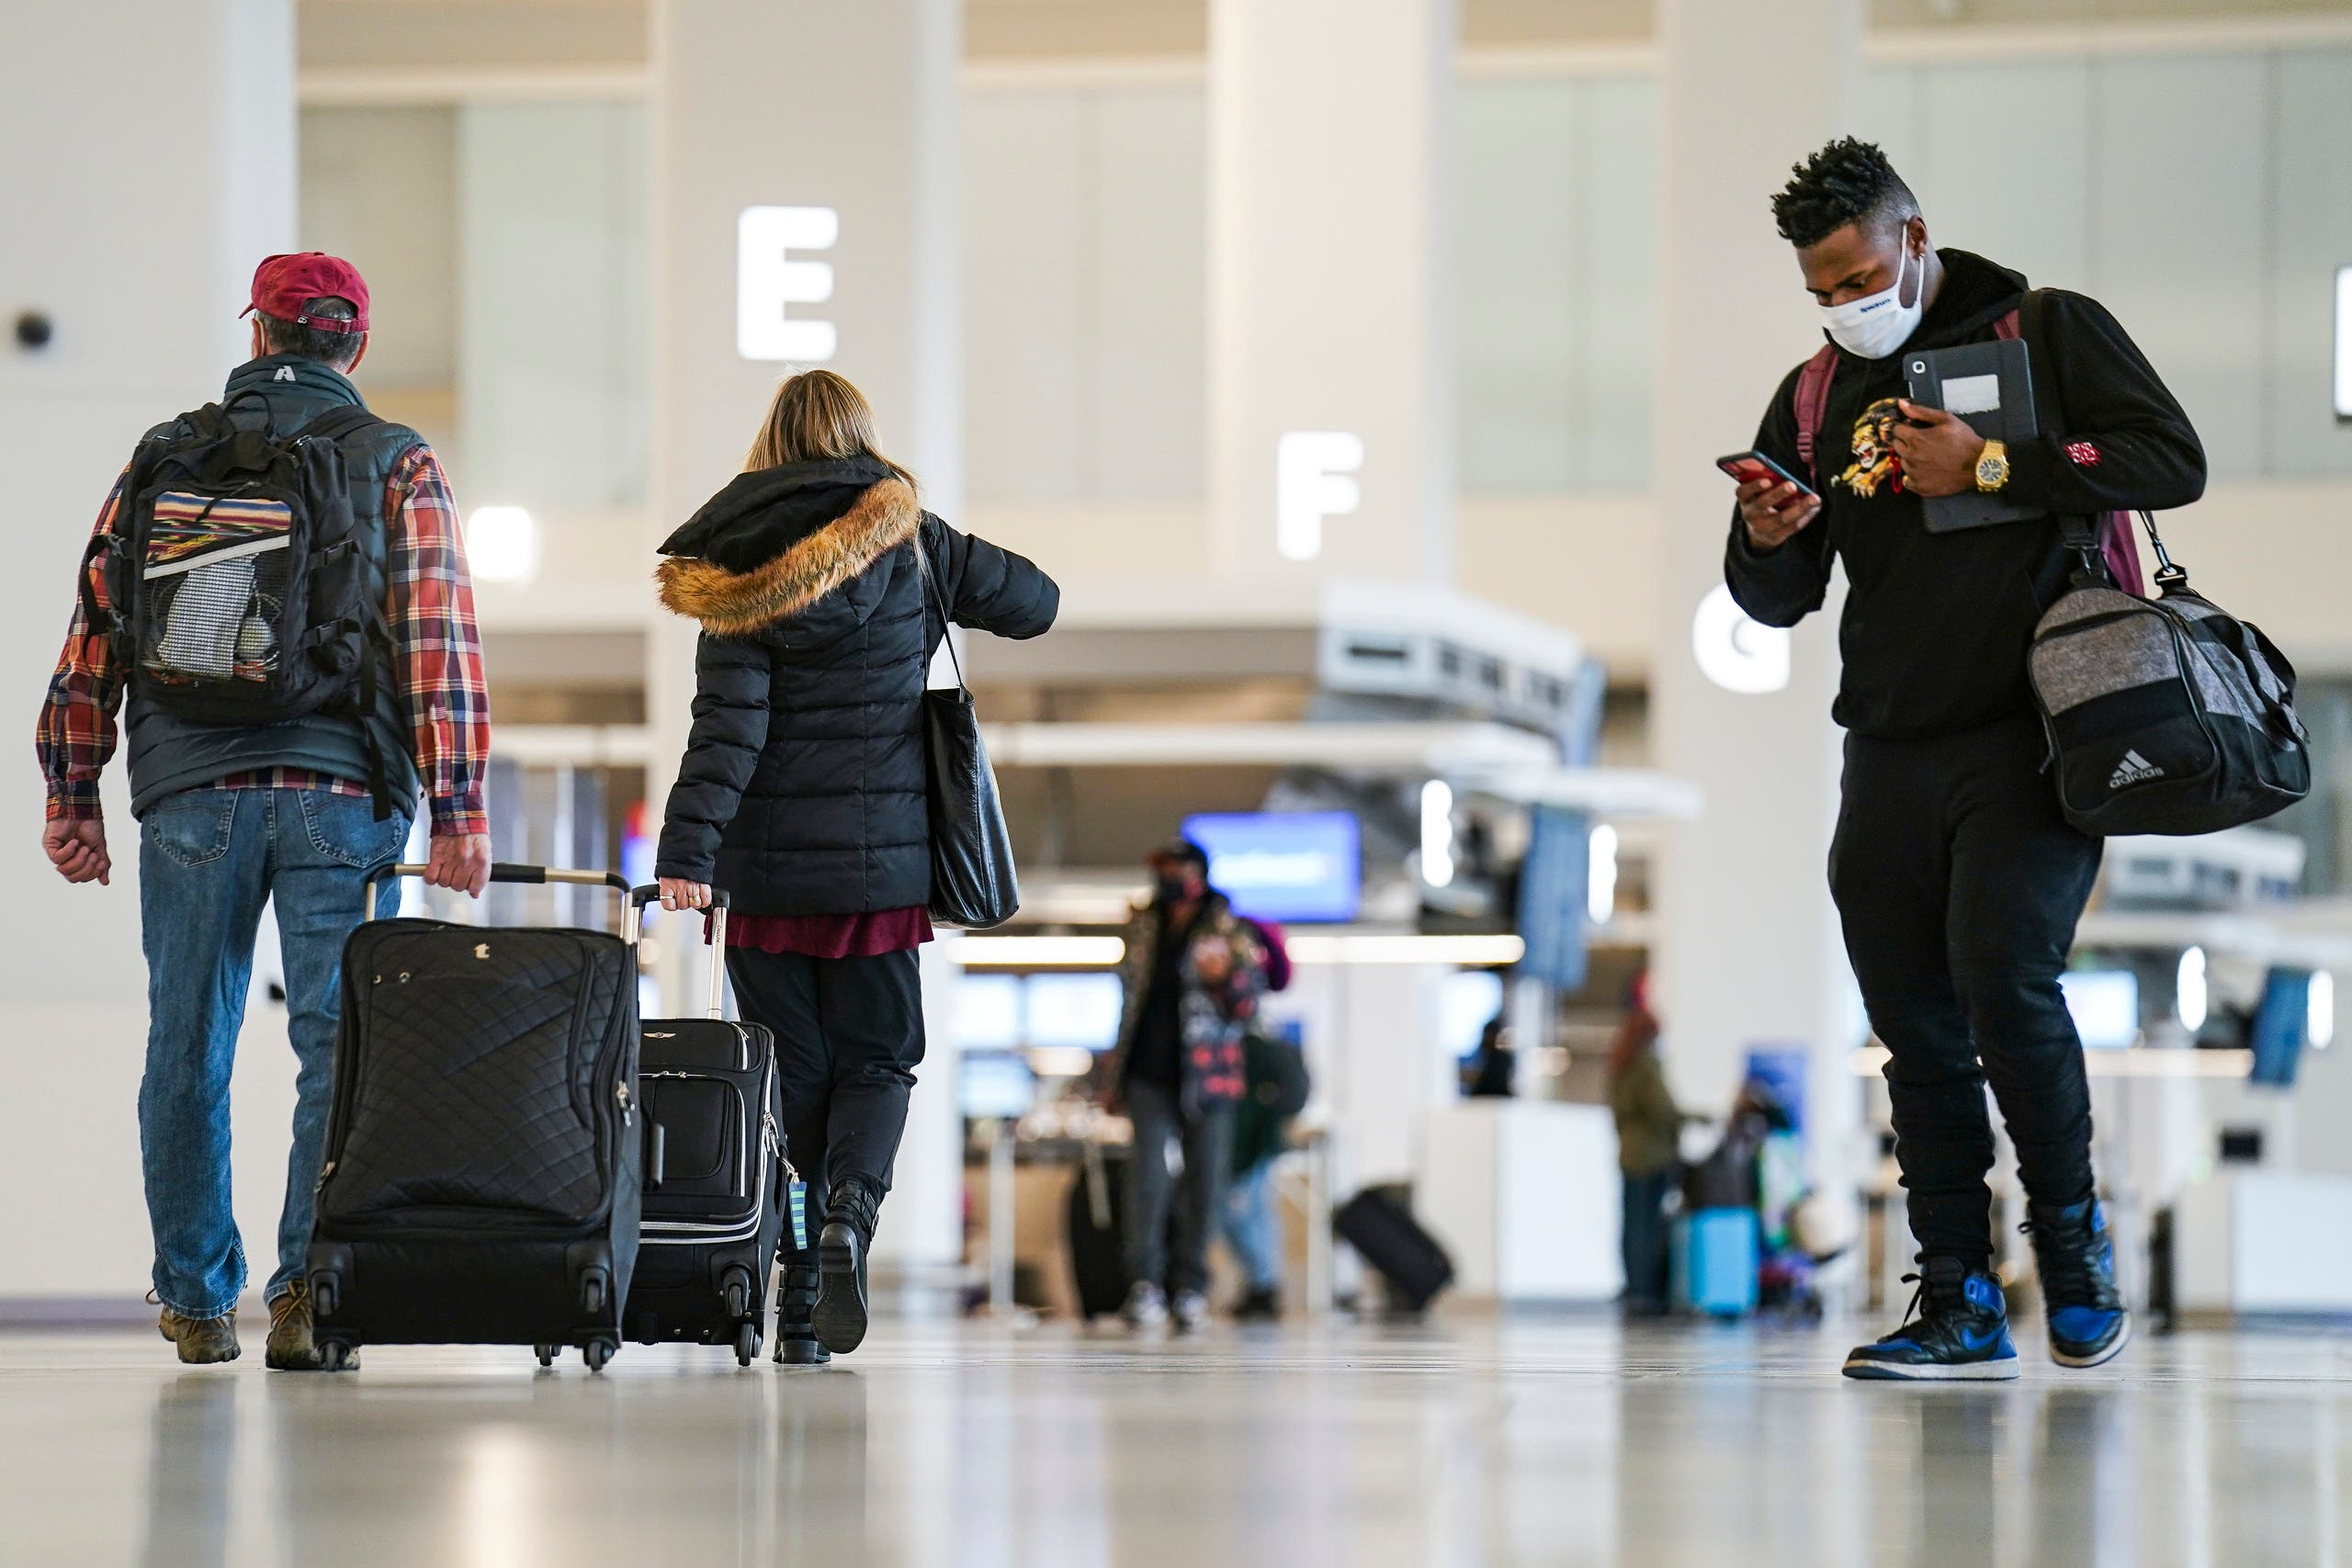 Travelers wearing protective masks to prevent the spread of COVID-19 arrive in Terminal C at LaGuardia Airport. (AP)